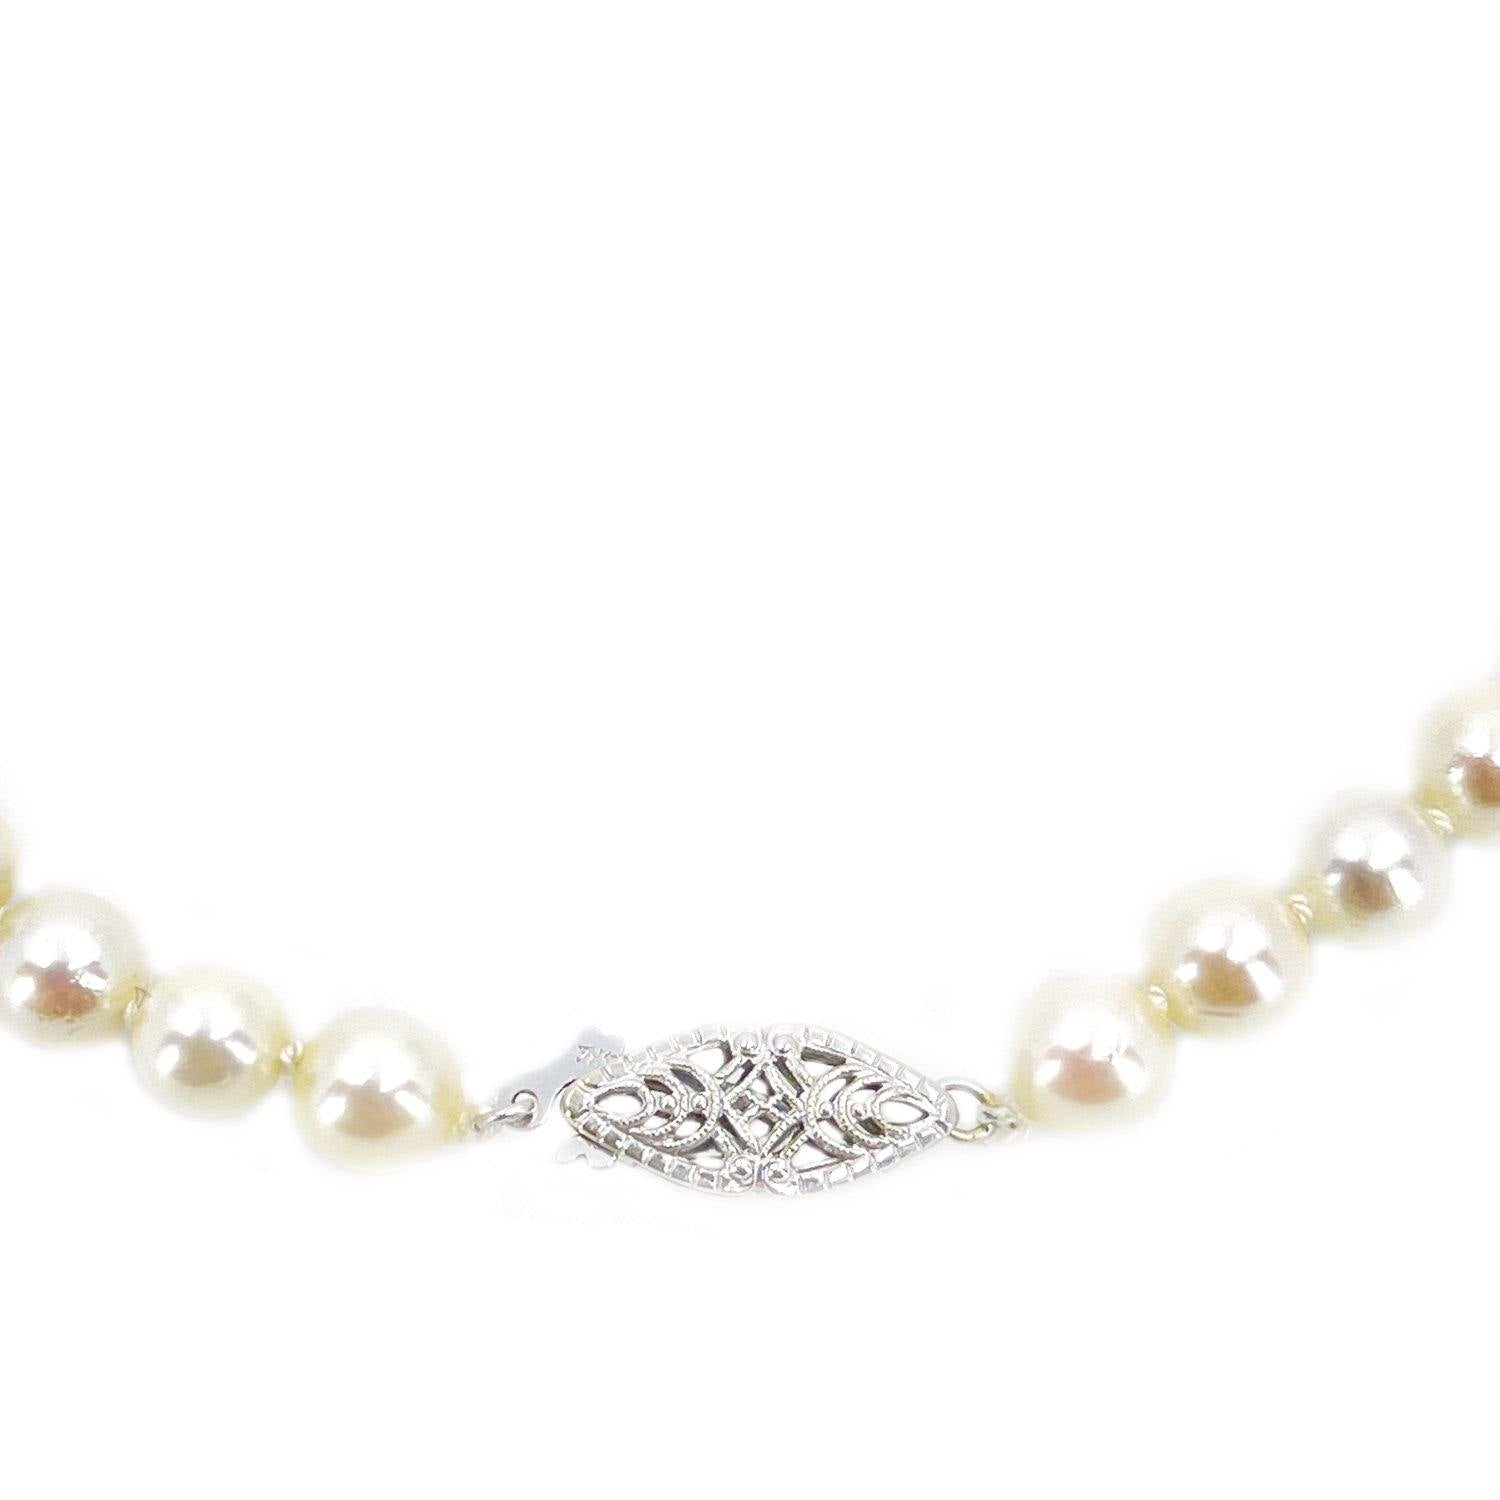 Lace Filigree Japanese Cultured Akoya Pearl Necklace - 14K White Gold 15.50 Inch